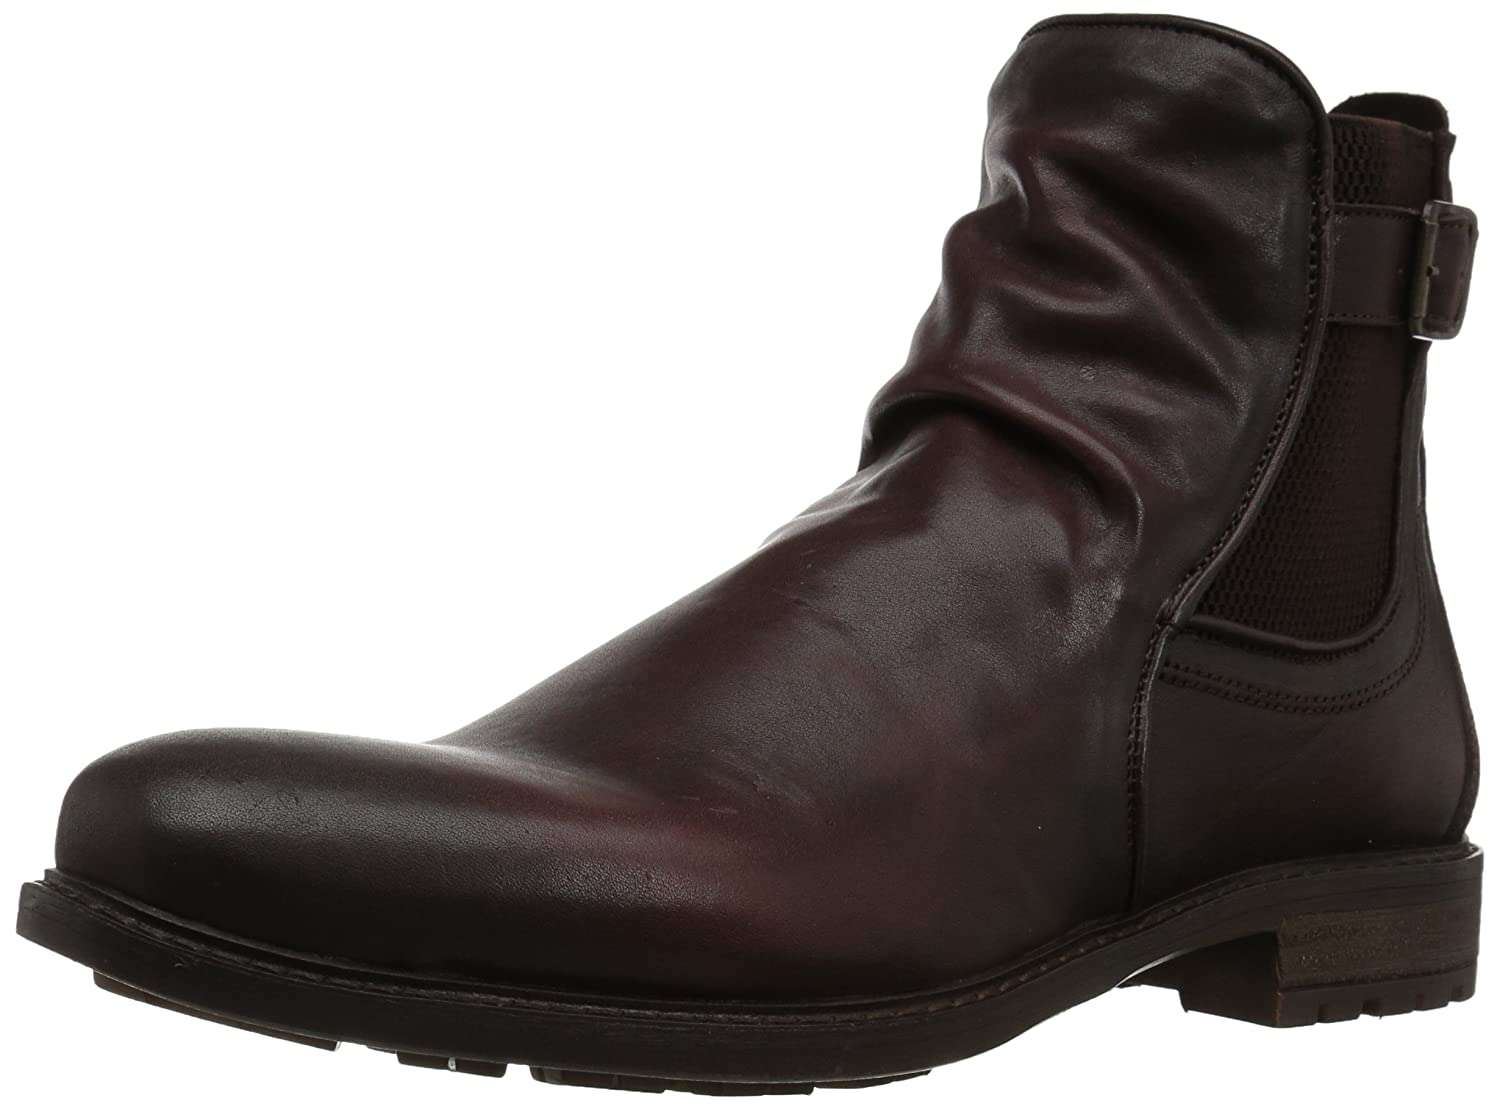 Steve Madden Men's Loren Chelsea Boot Dark Brown 10 US Size Conversion M US LORE01M1